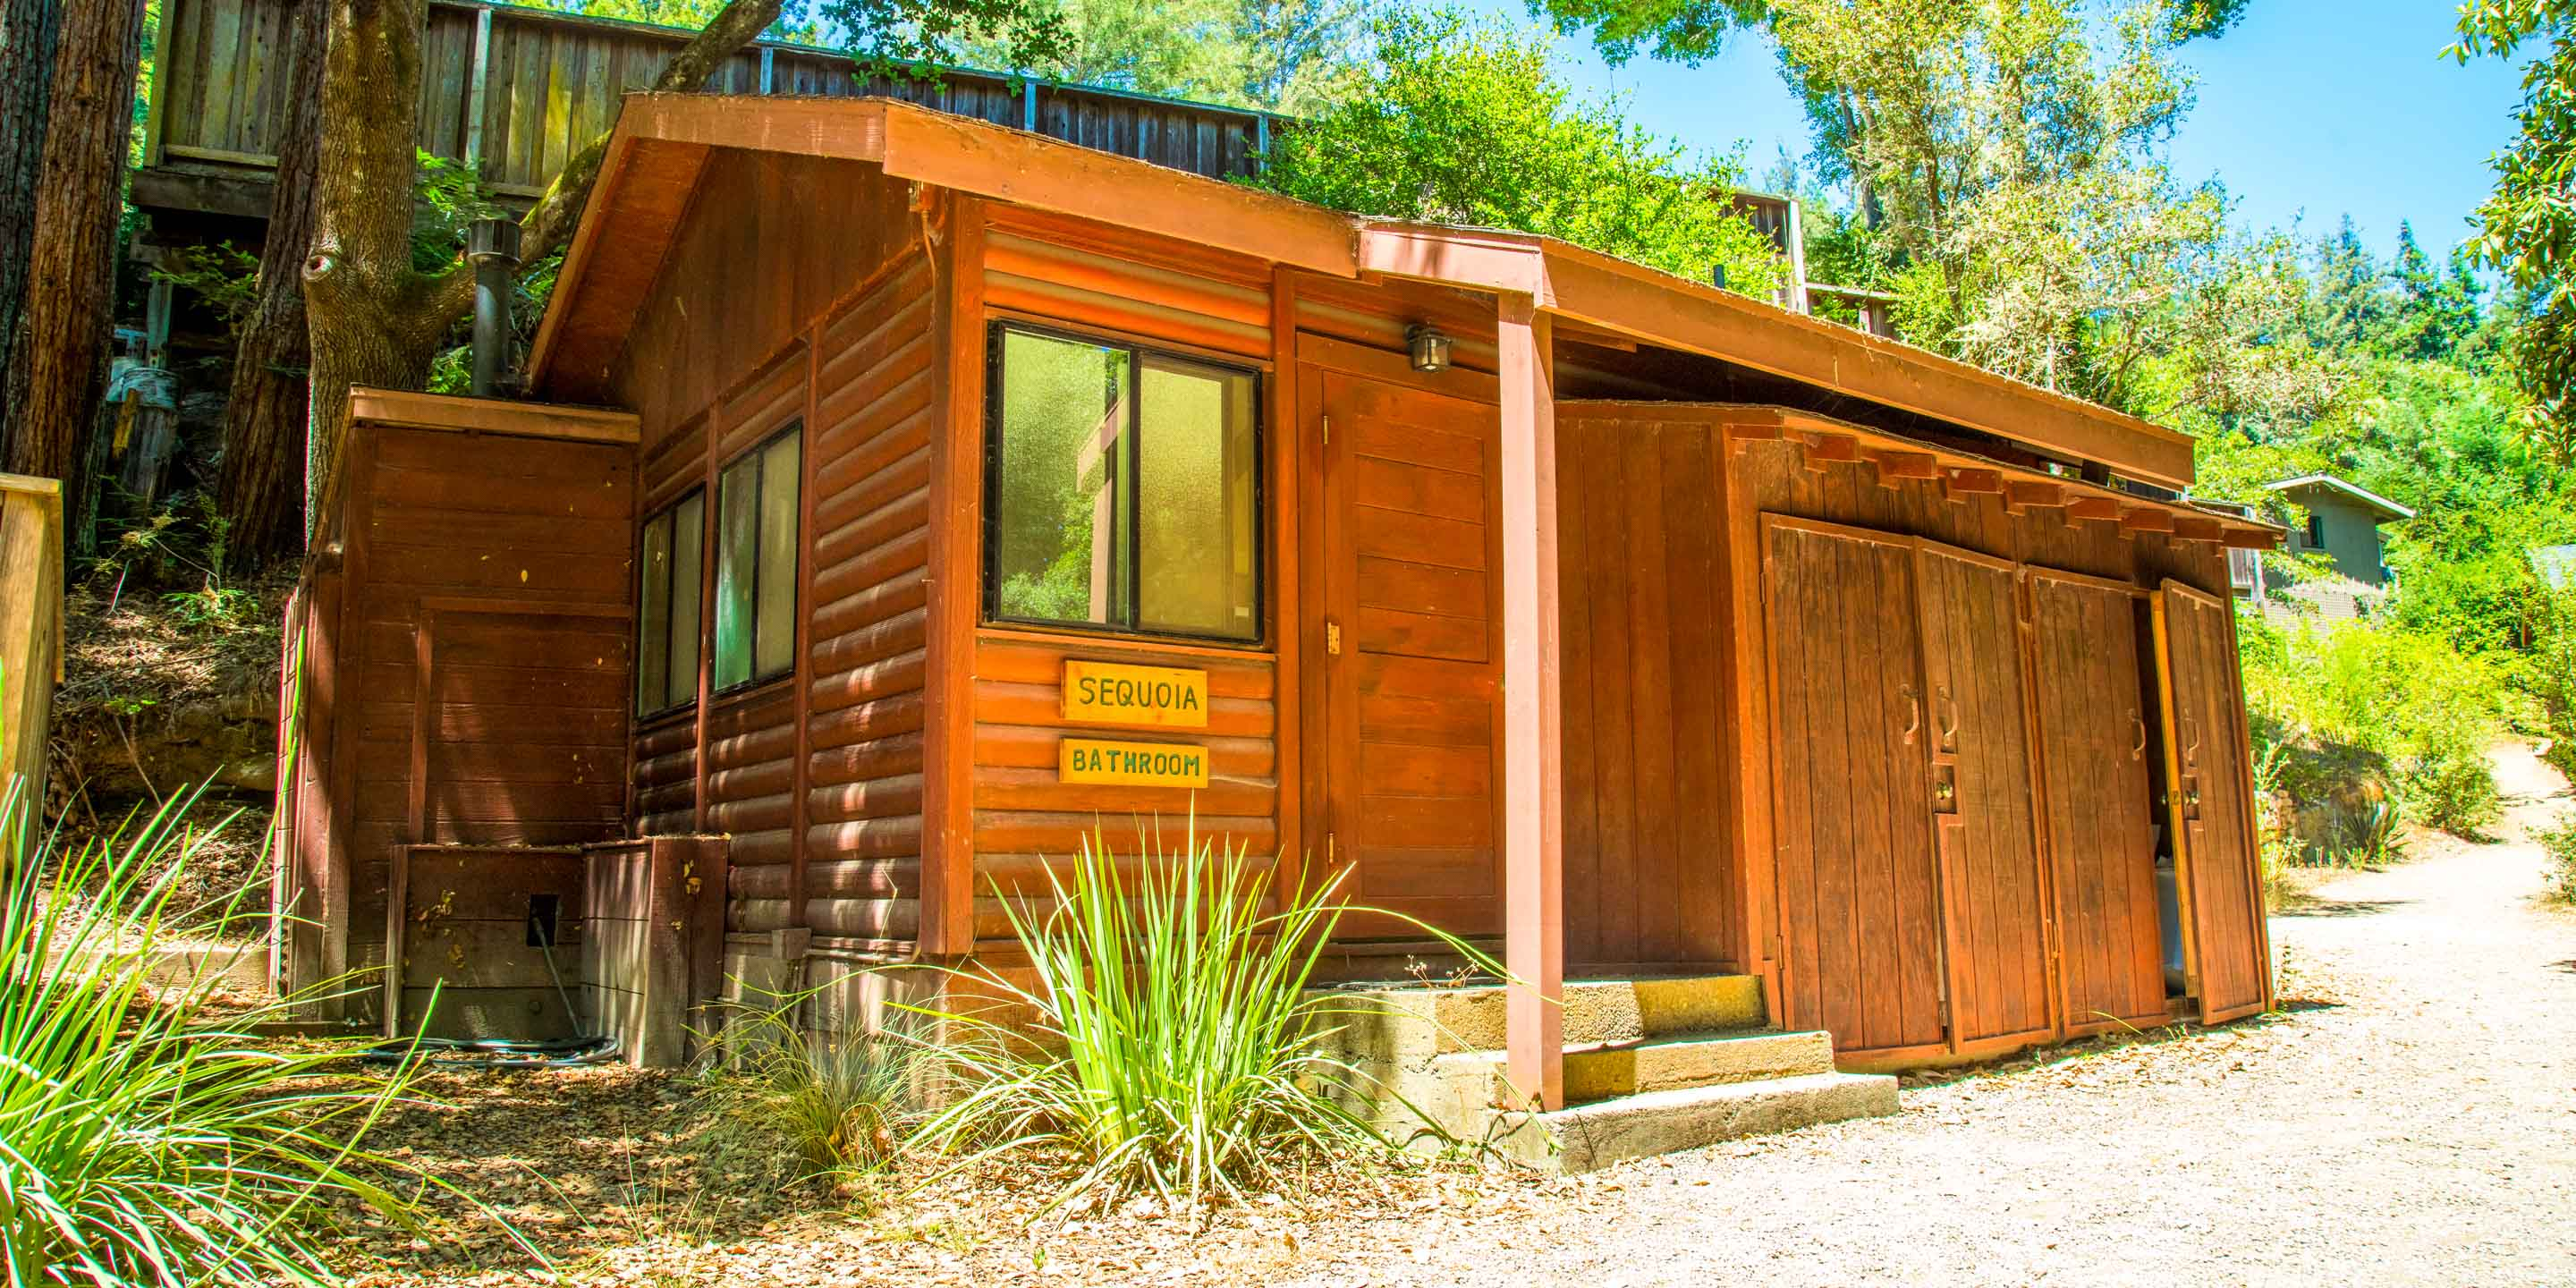 Sequoia, on of Kennolyn's camp bathroom cabins